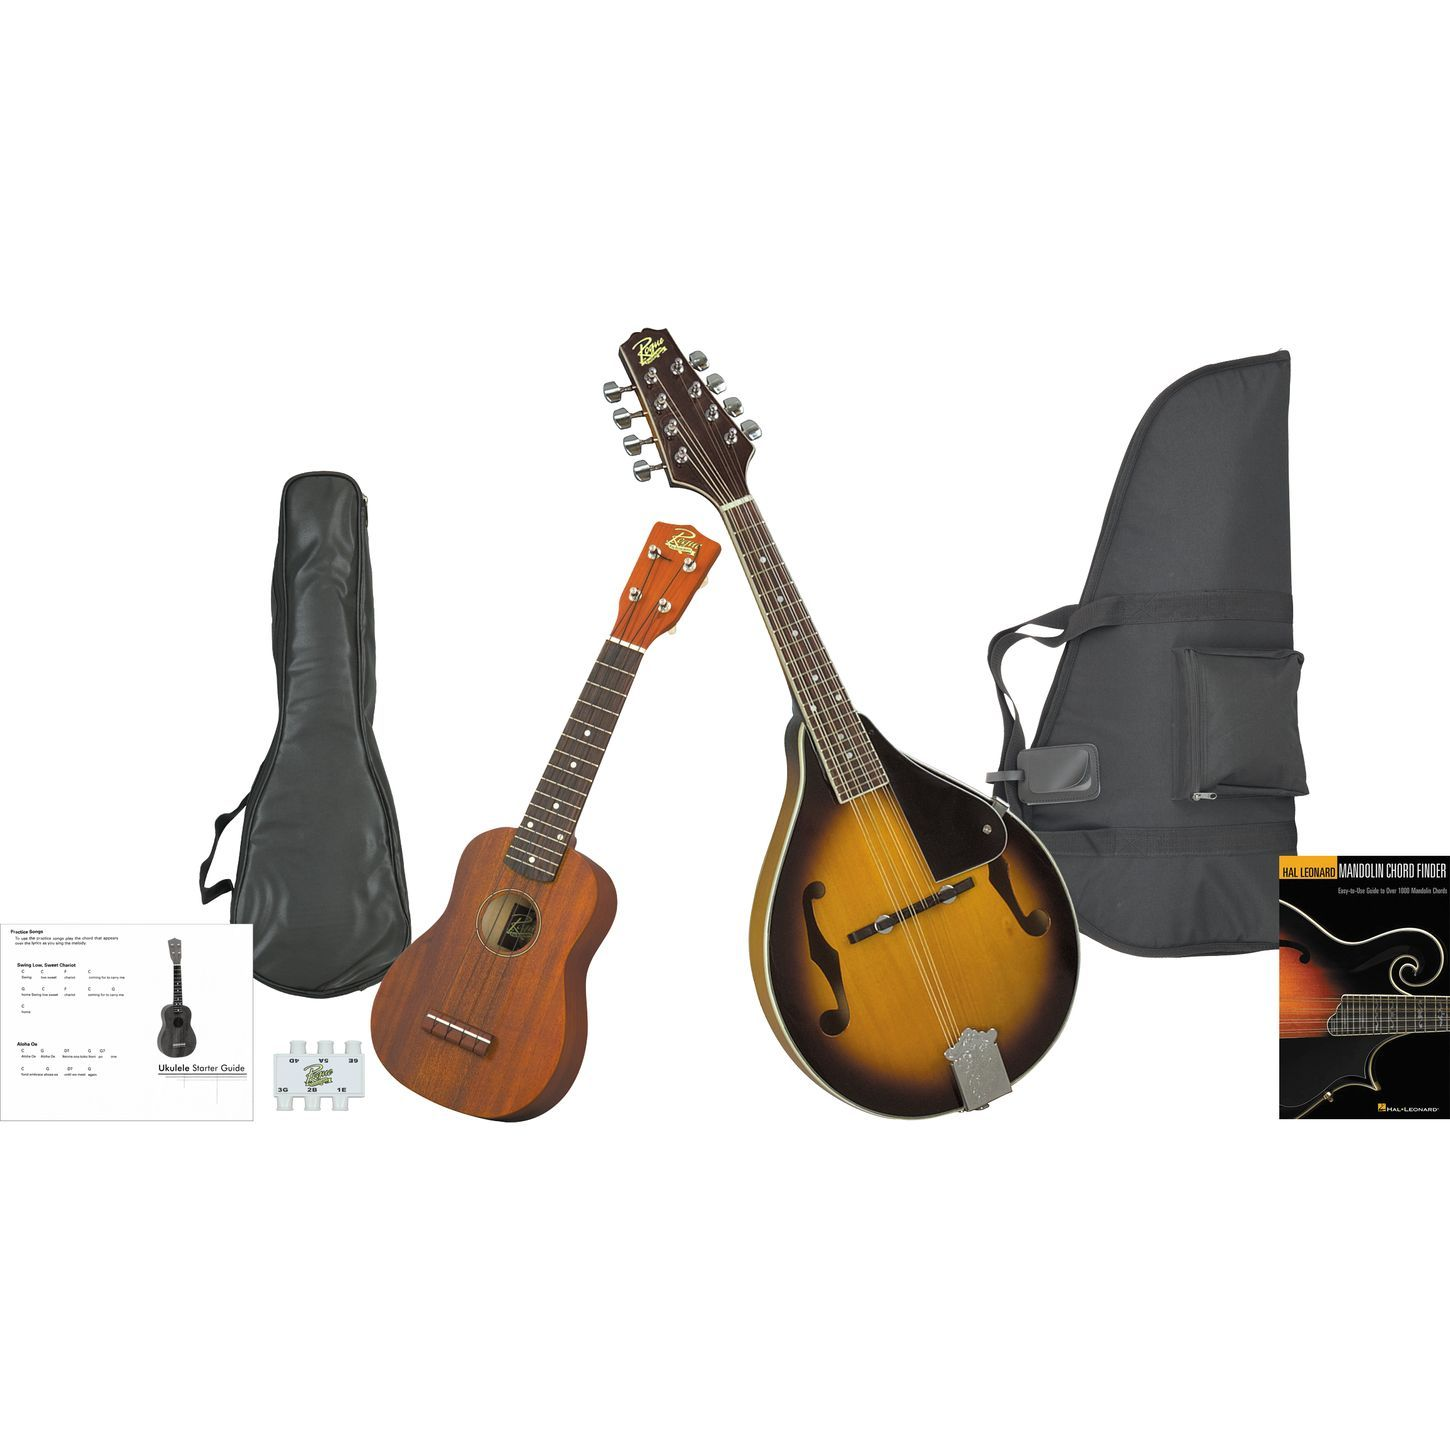 Dean Guitars Ukulele Travel Uke: Mandolin And Ukulele Travel Pack Black (With Images